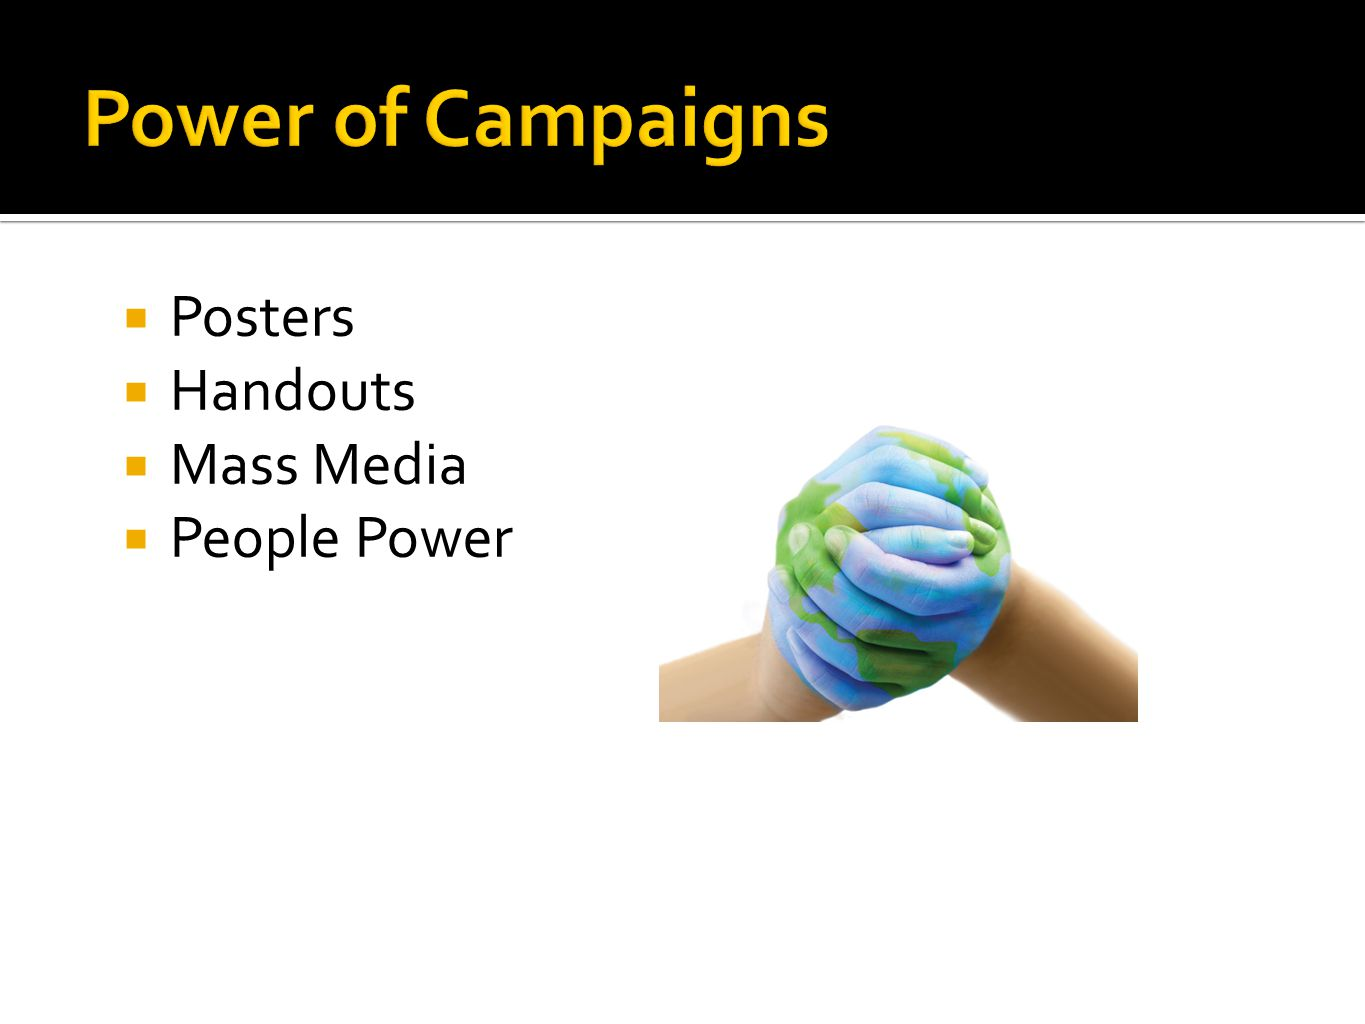  Posters  Handouts  Mass Media  People Power